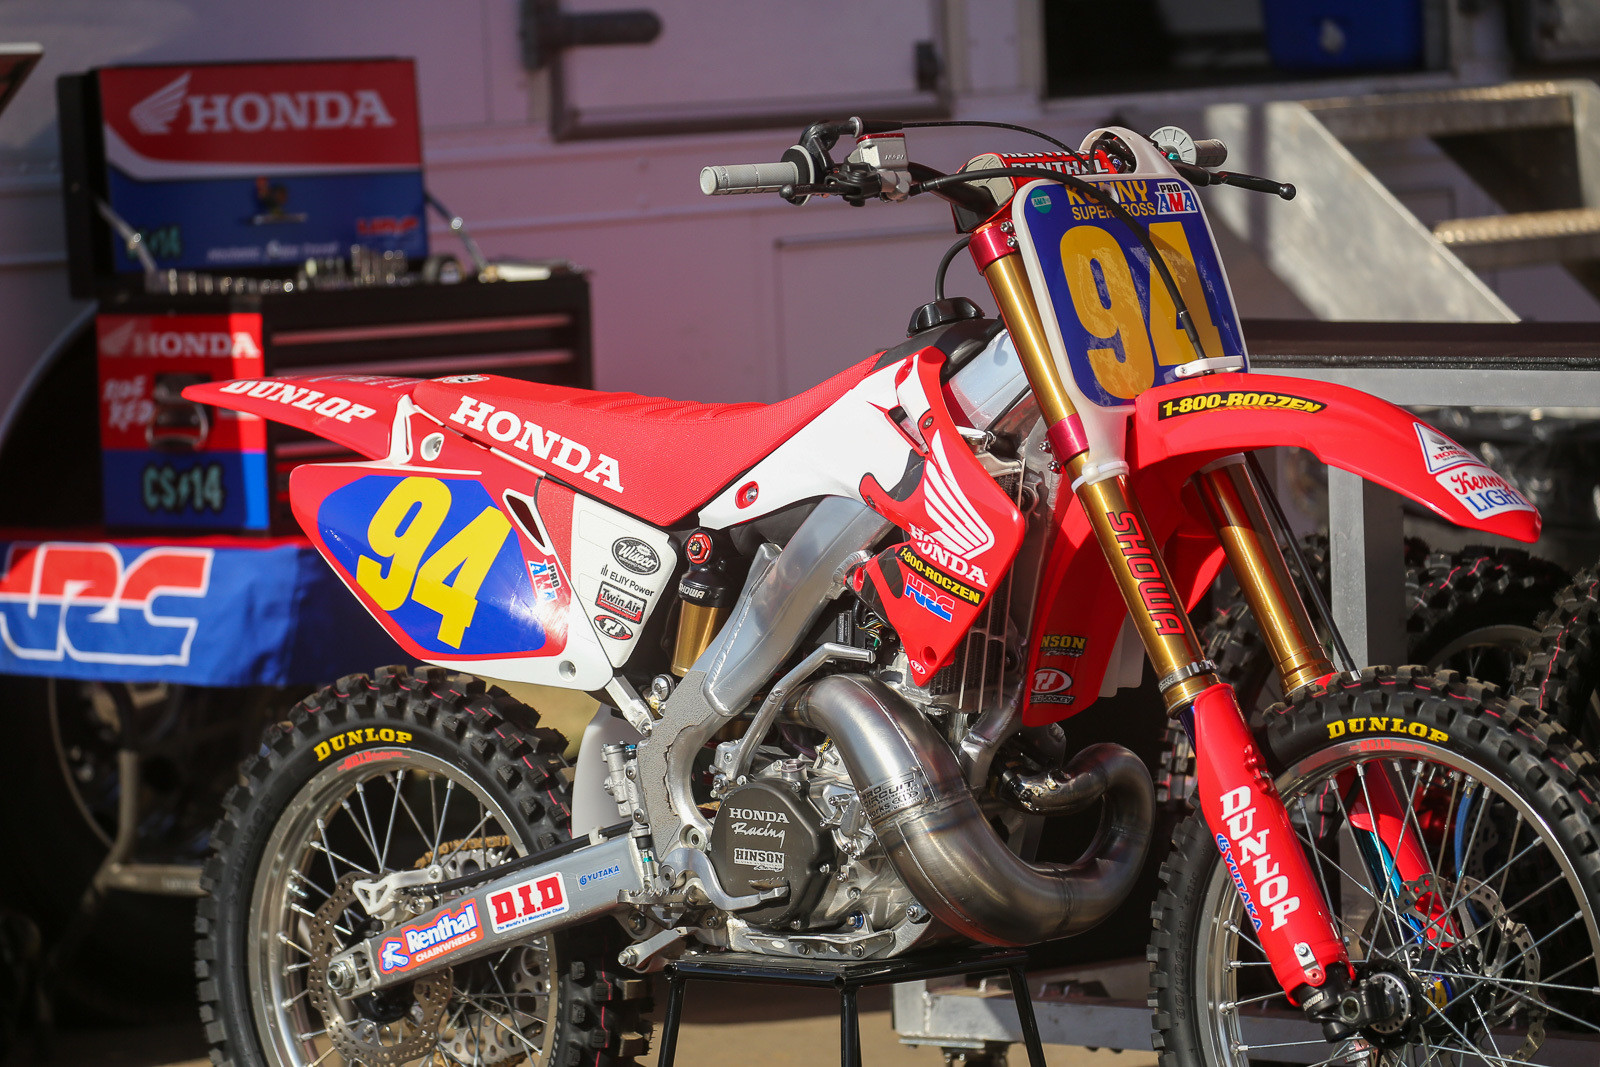 Ken Roczen busted out Jeremy McGrath's '06 Honda 250 for the event, but it had some modern touches, like his current front suspension components.